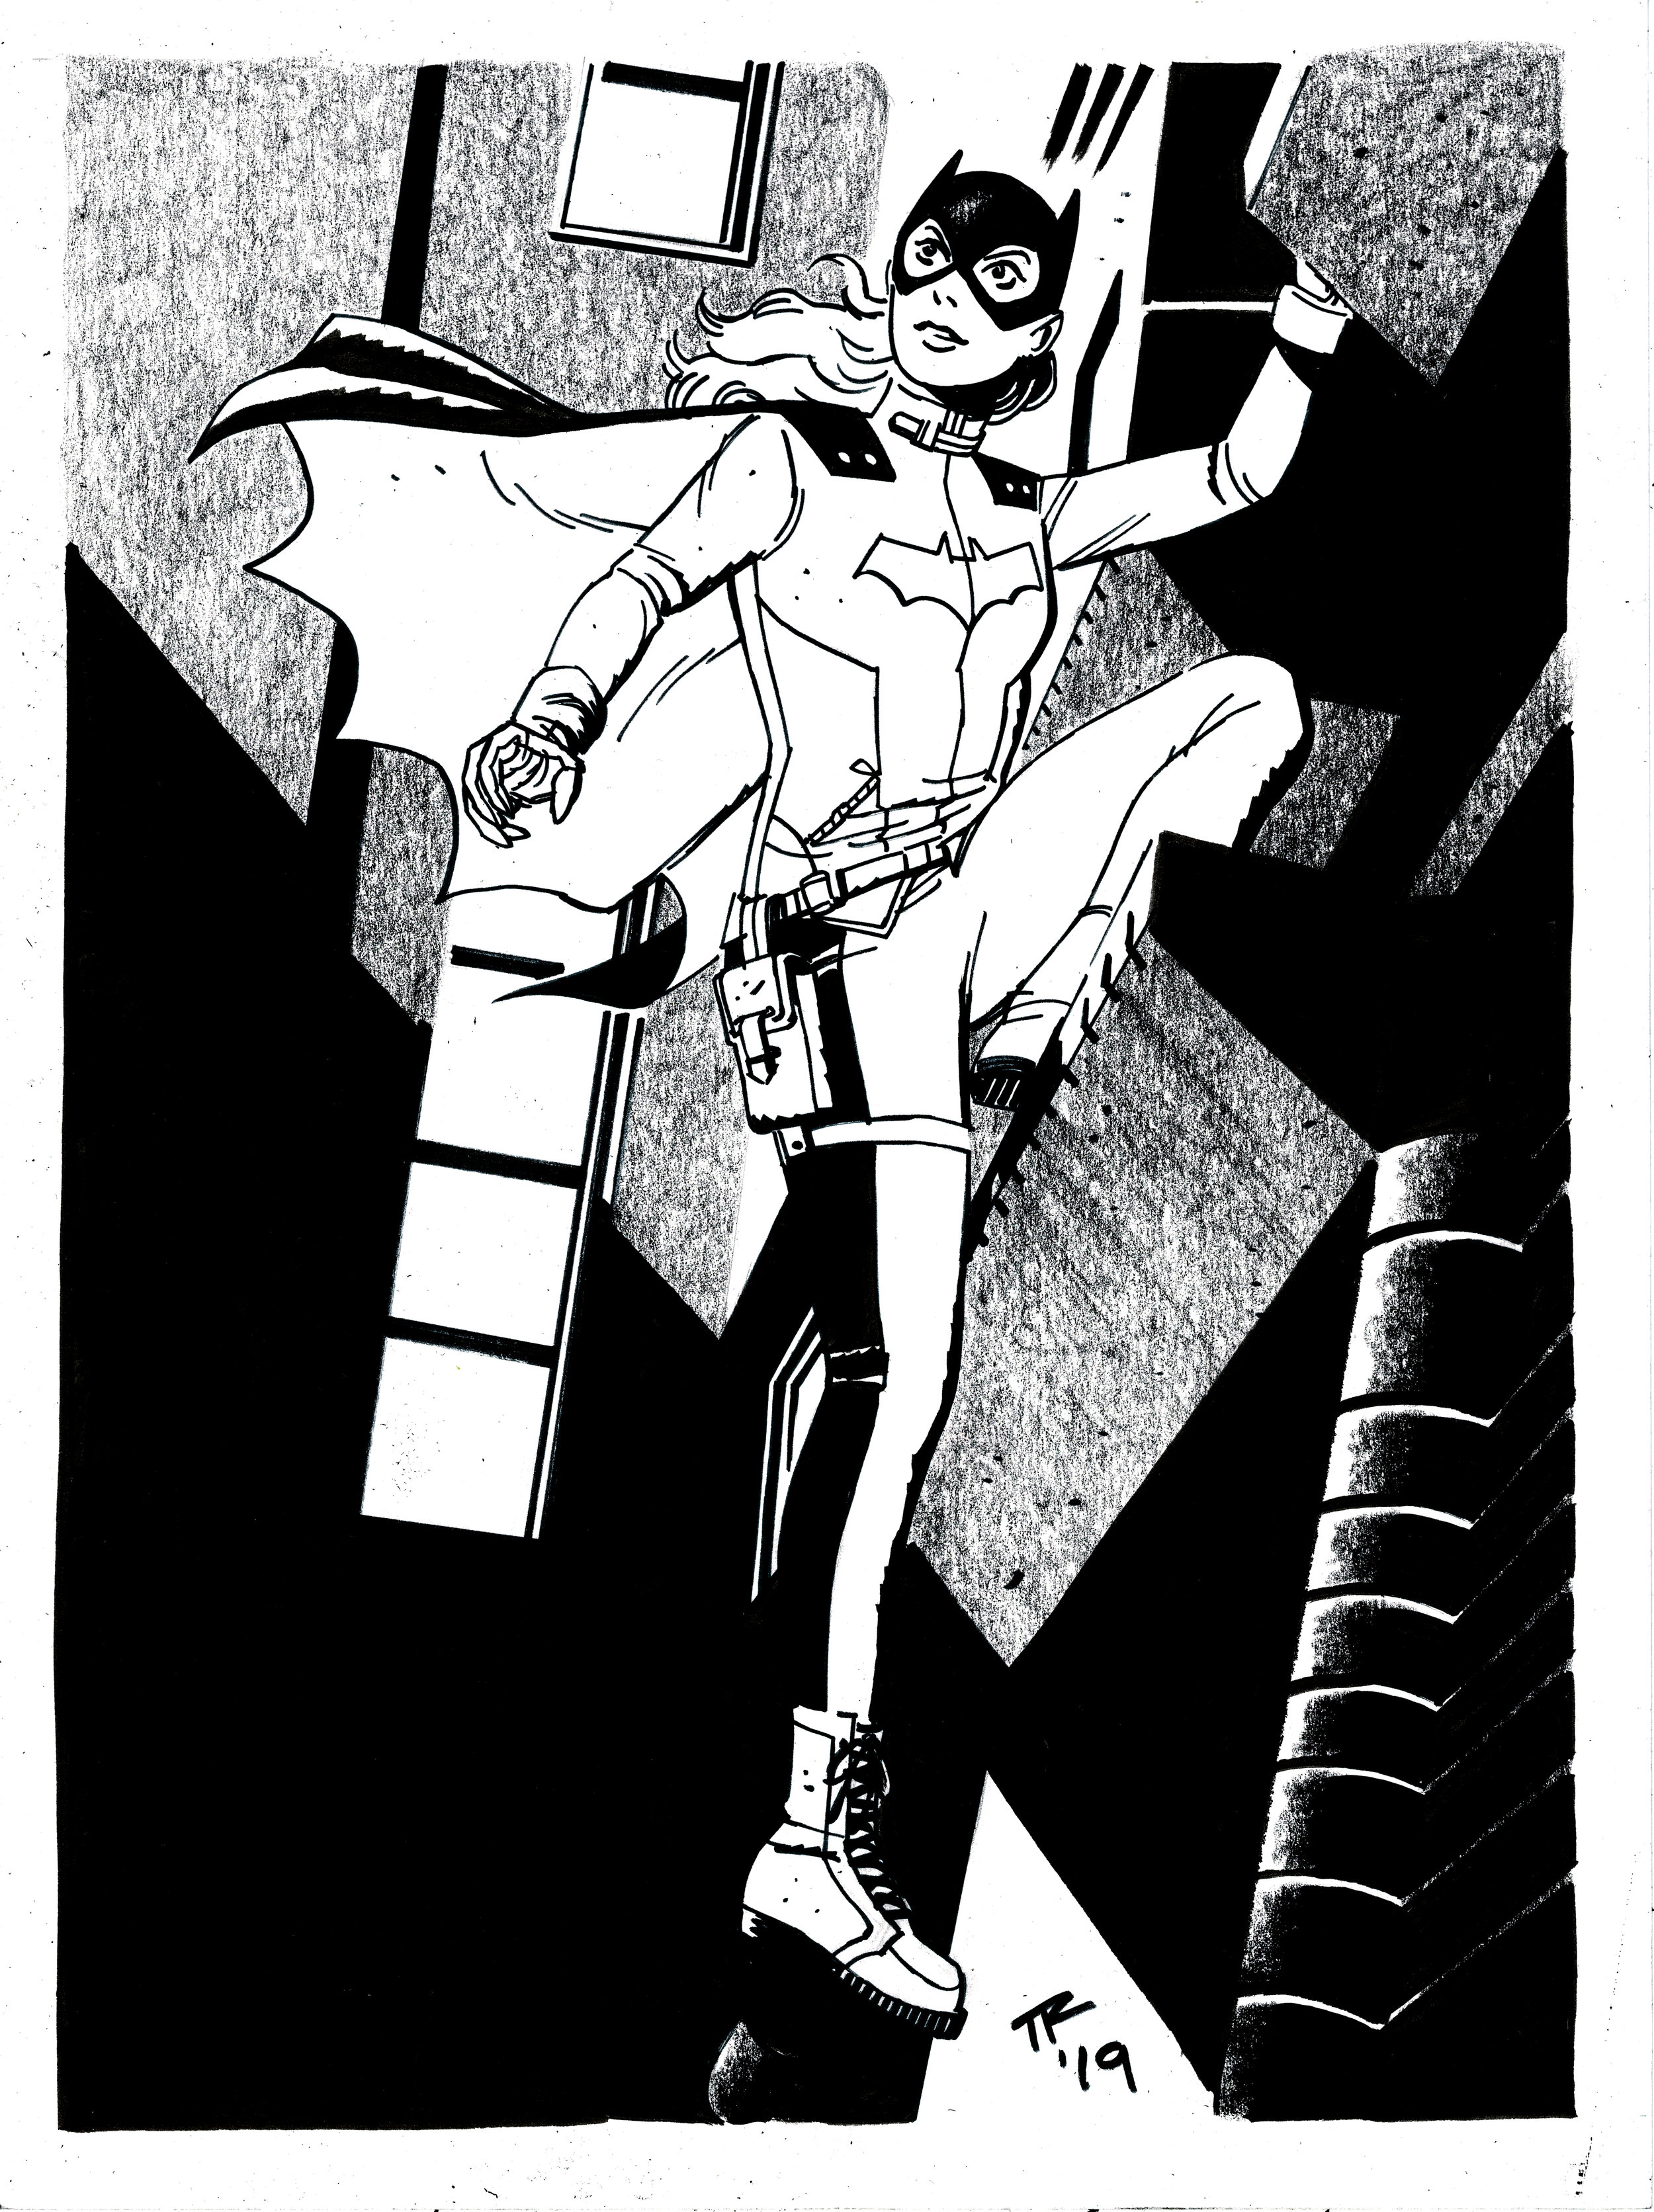 BATGIRL-COMMISH-Recovered.jpg